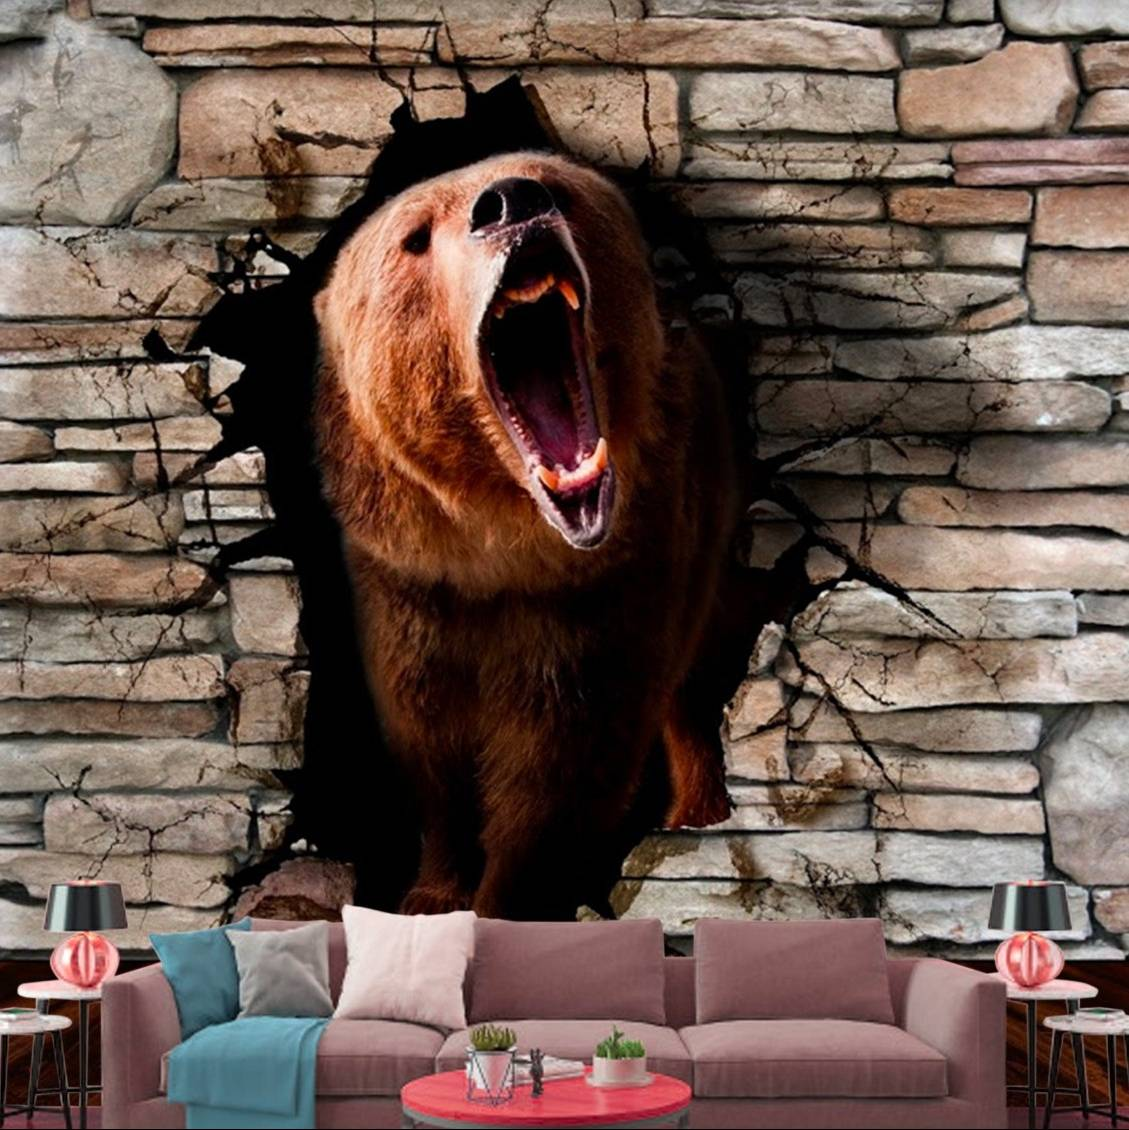 Wallpaper Custom Wallpaper 3d Wallpaper Dinding Beruang Bear